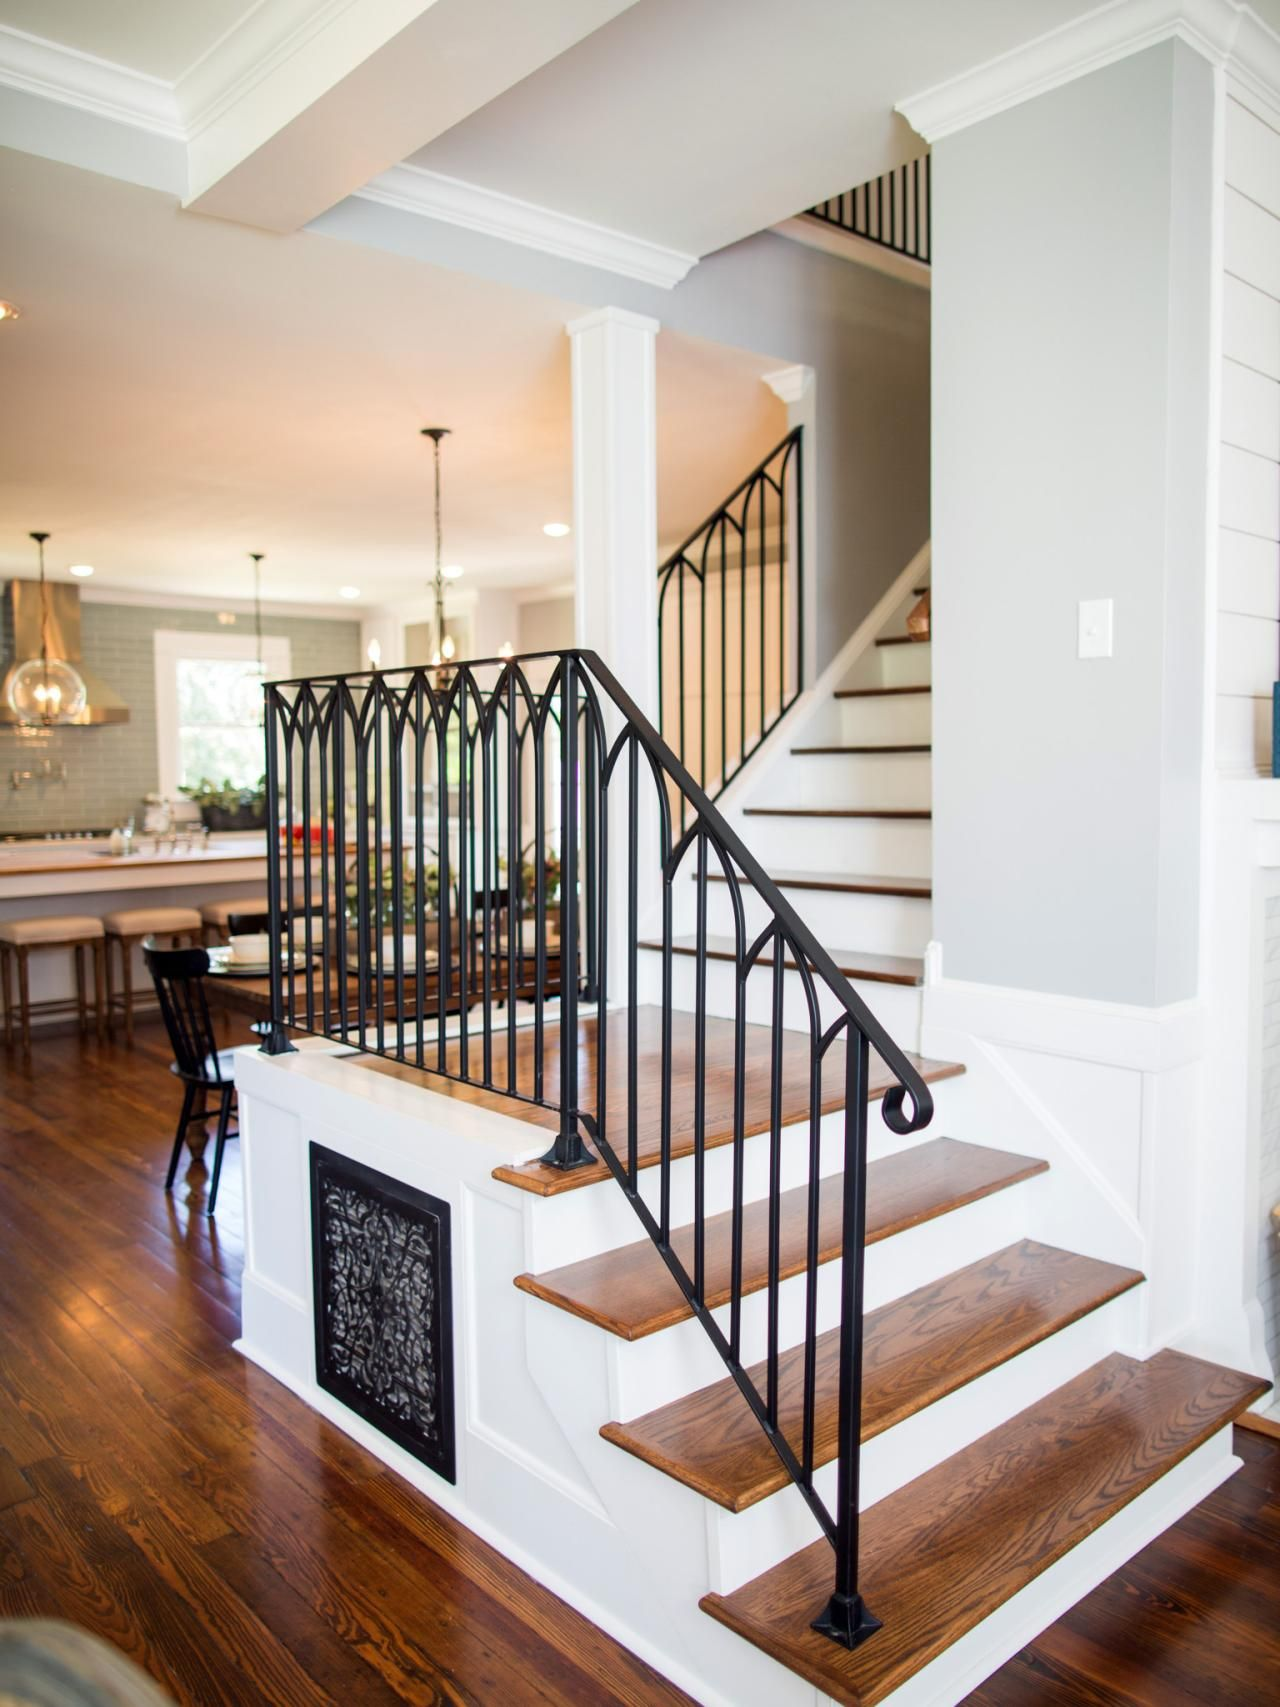 Find The Best Of Hgtv 39 S Fixer Upper With Chip And Joanna